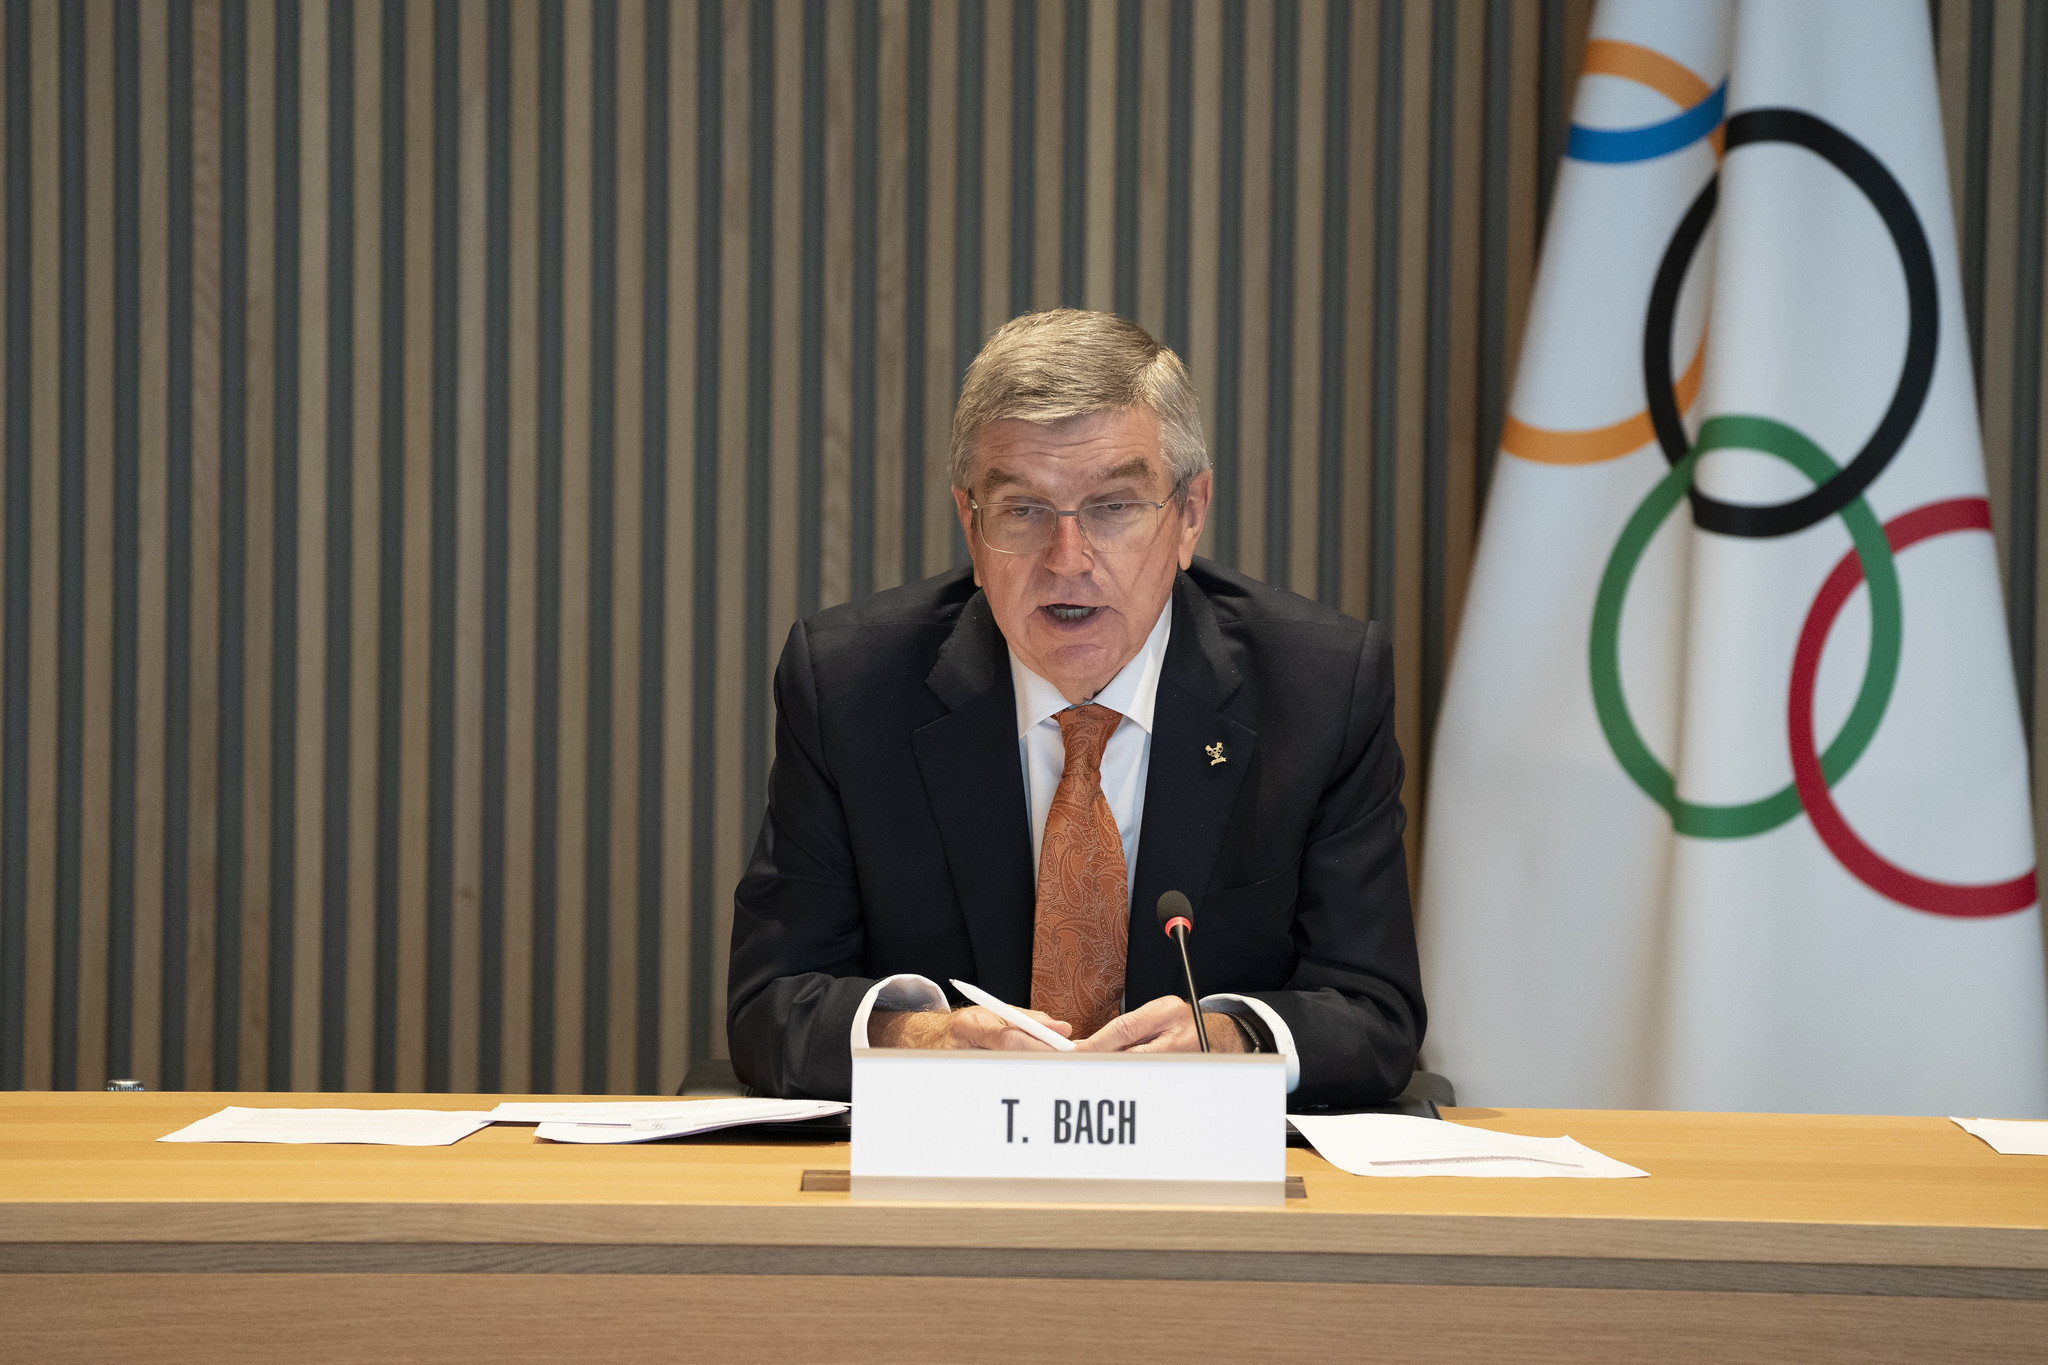 Thomas Bach is set to be re-elected IOC President ©Getty Images